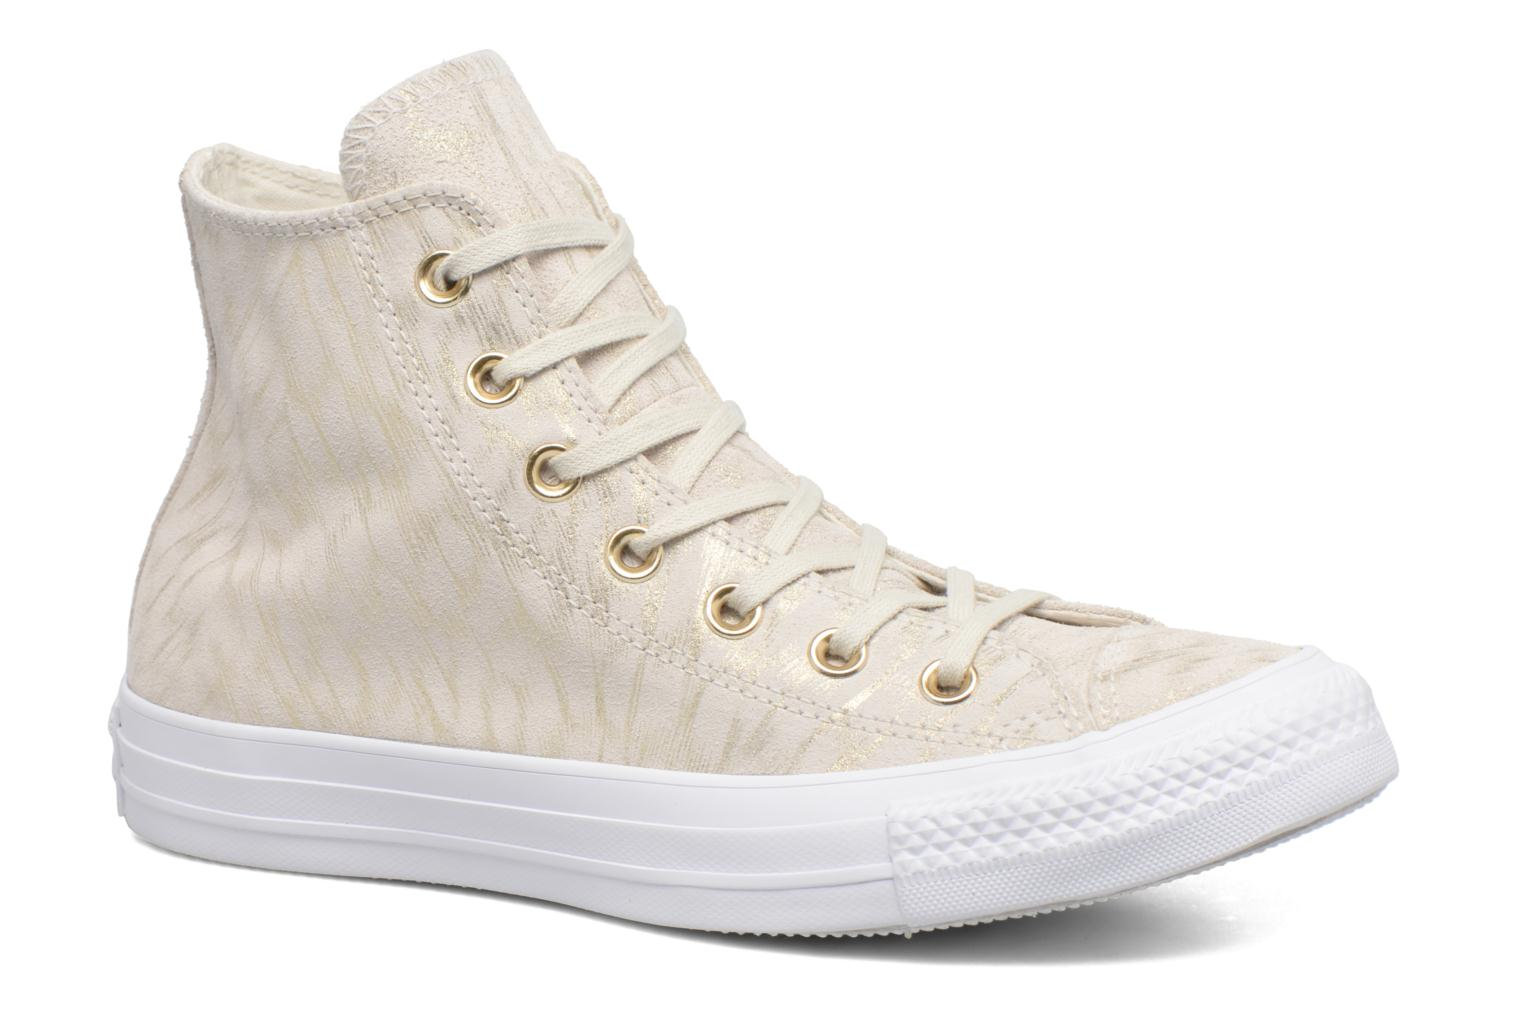 Converse Chuck Taylor All Star Shimmer Suede Hi